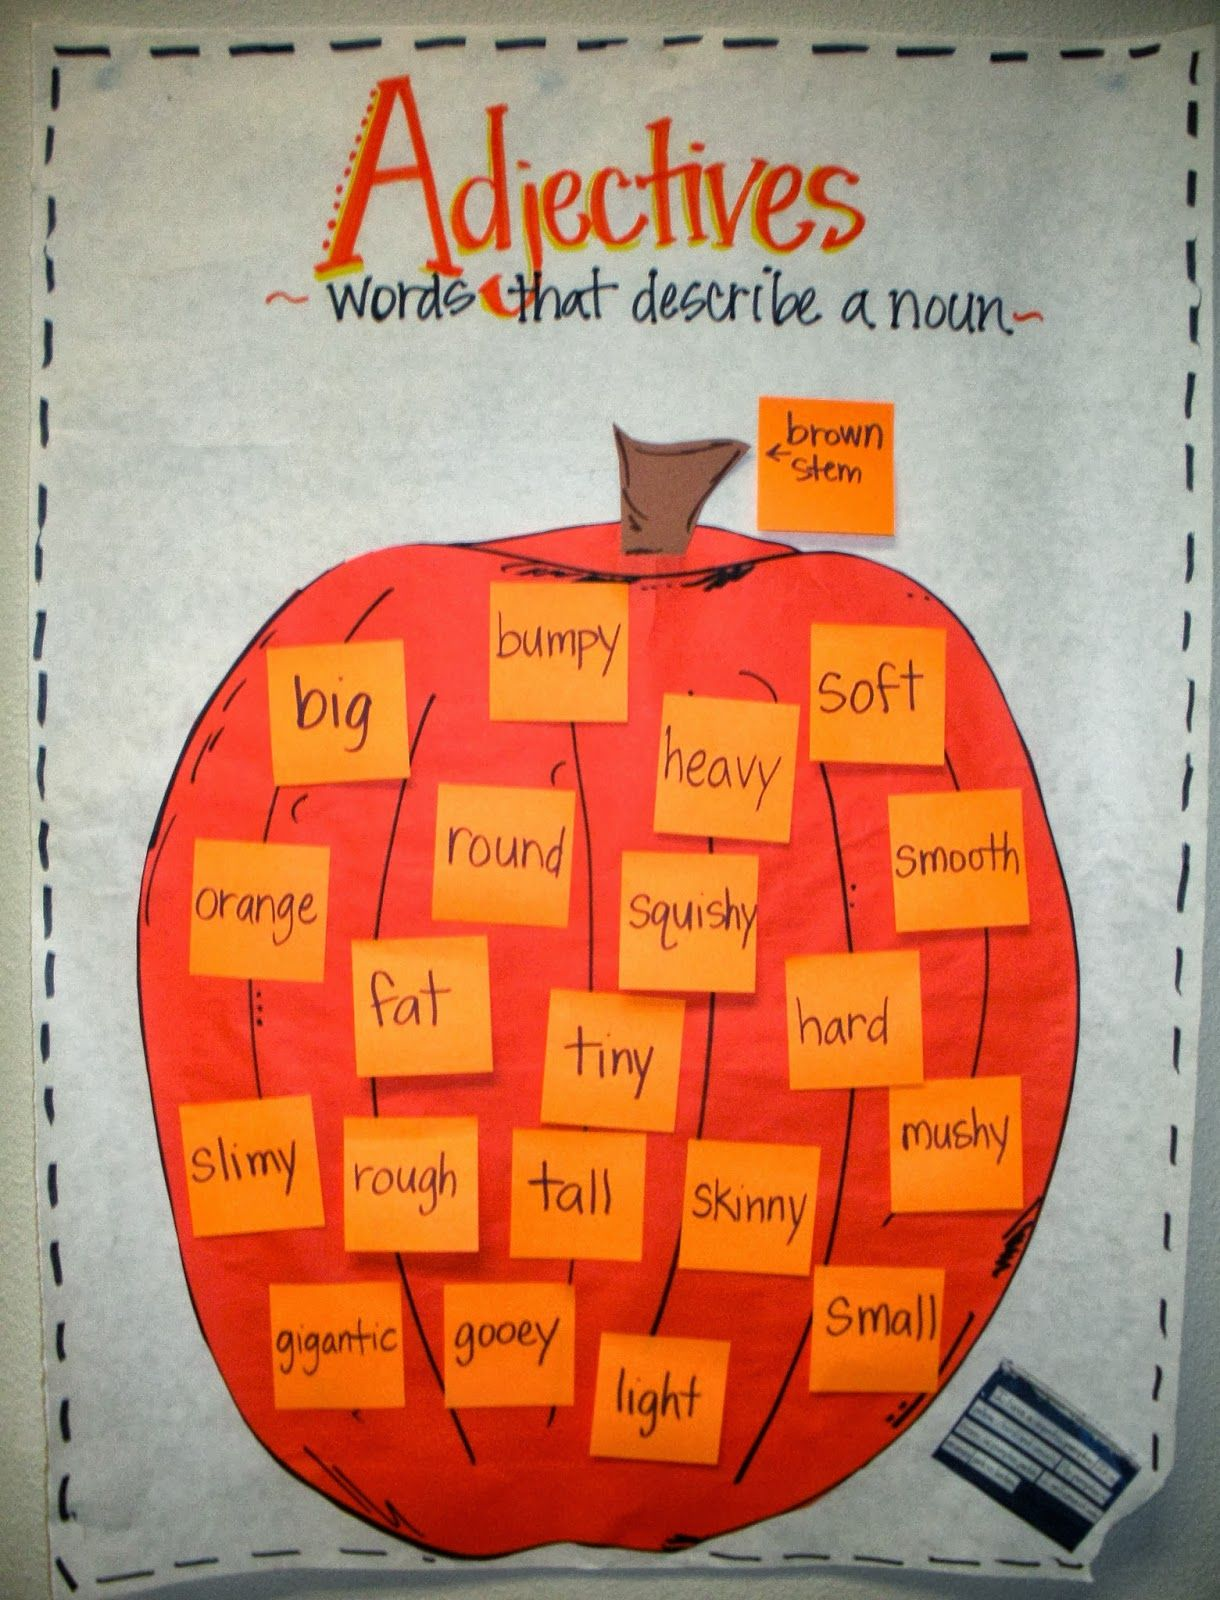 Pumpkin Adjectives Fun Way To Build Vocabulary